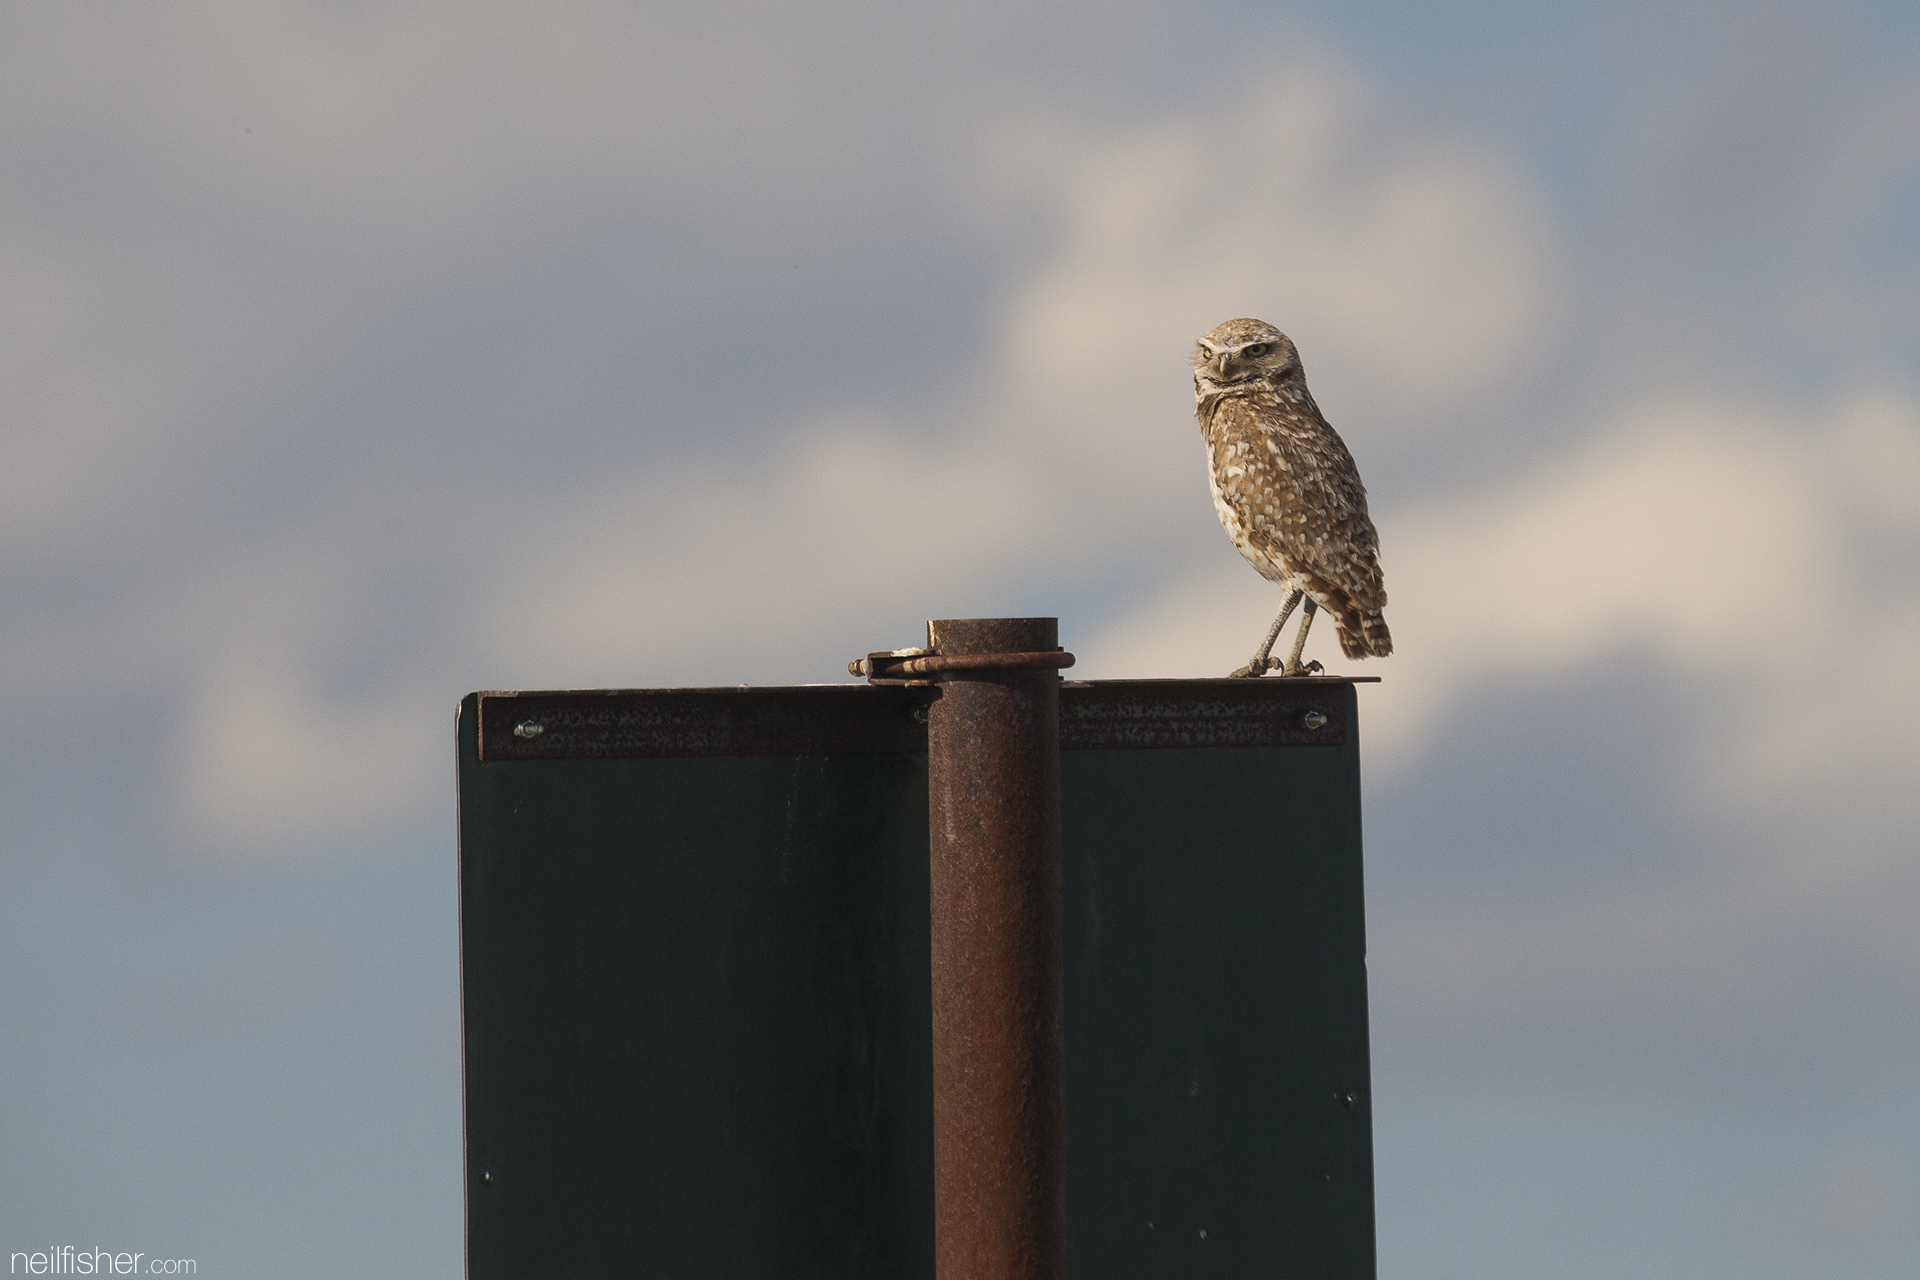 The radiating warmth of roadway asphalt heated by the relentless summer sun attracts hoards of insects. Burrowing owls searching for an easy meal are often drawn towards insect covered roads and become fatalities of speeding cars. EXIF 1/800sec f/8.0 ISO400 400mm 17:29 June 23rd, 2015